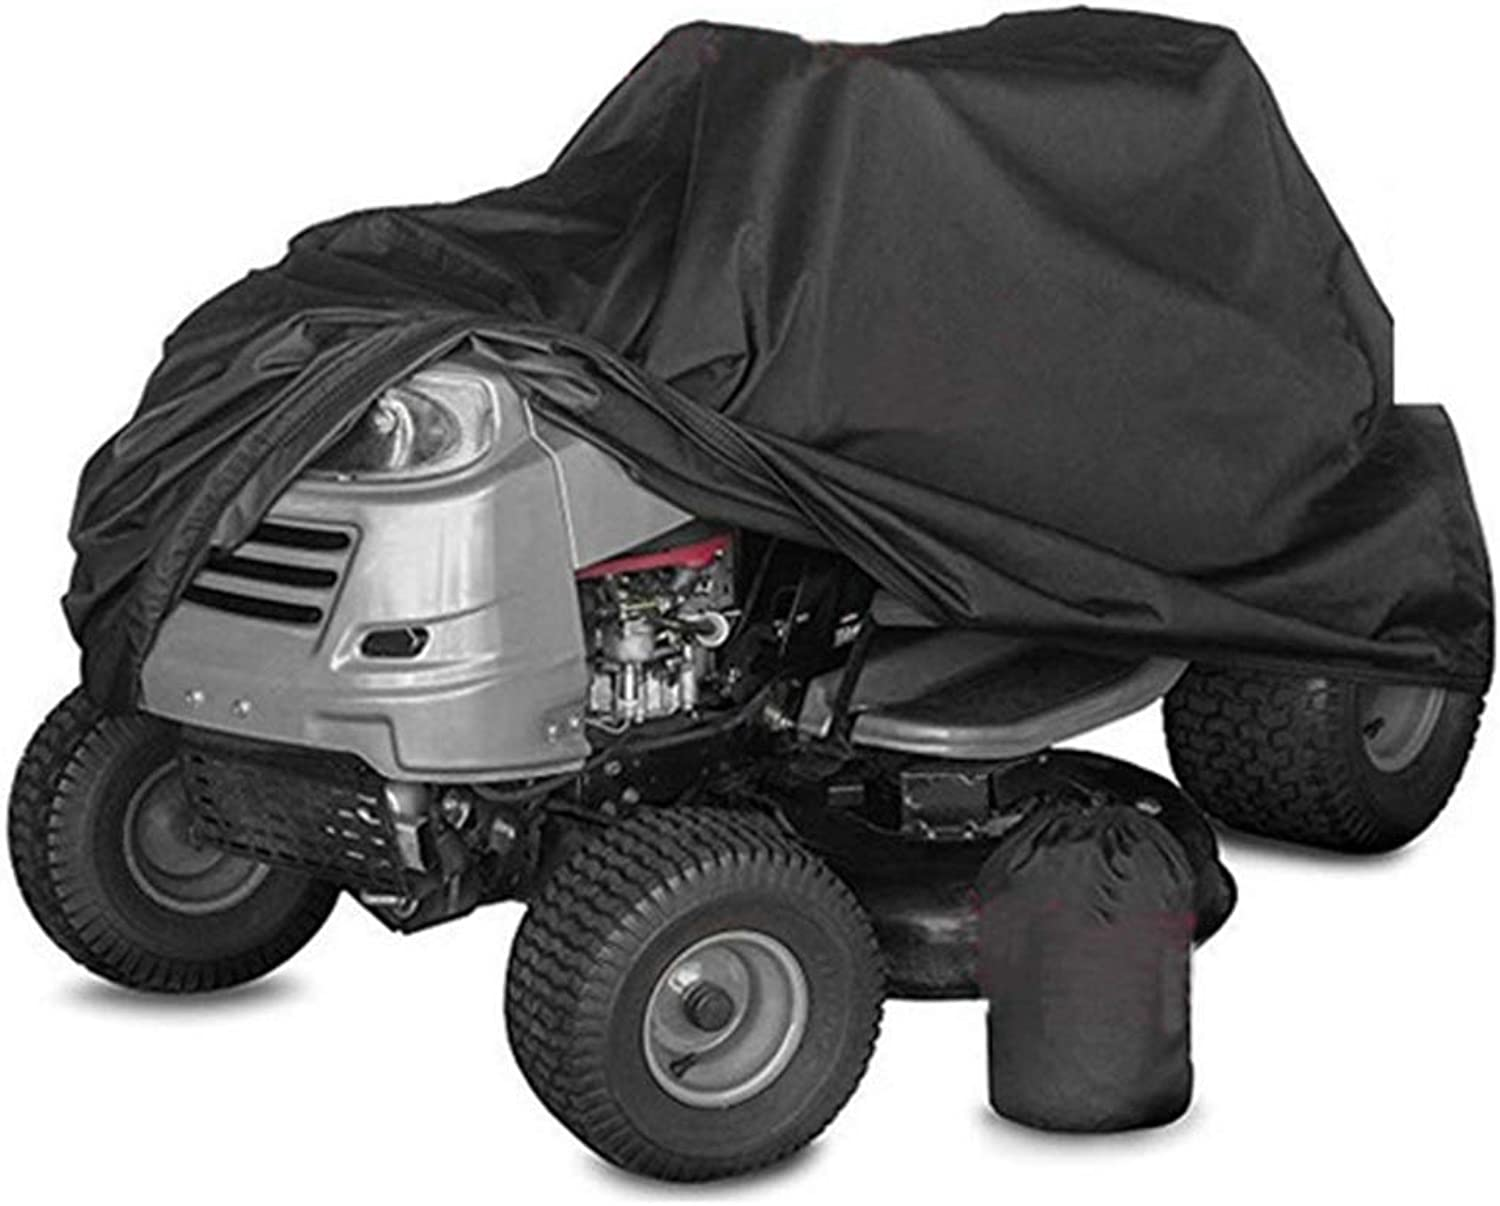 Outdoors Lawn Mower Cover - Garden Tractor Cover Waterproof Heavy Duty Durable Polyester Oxford, UV Predection, Black (Size   245x50x140cm)